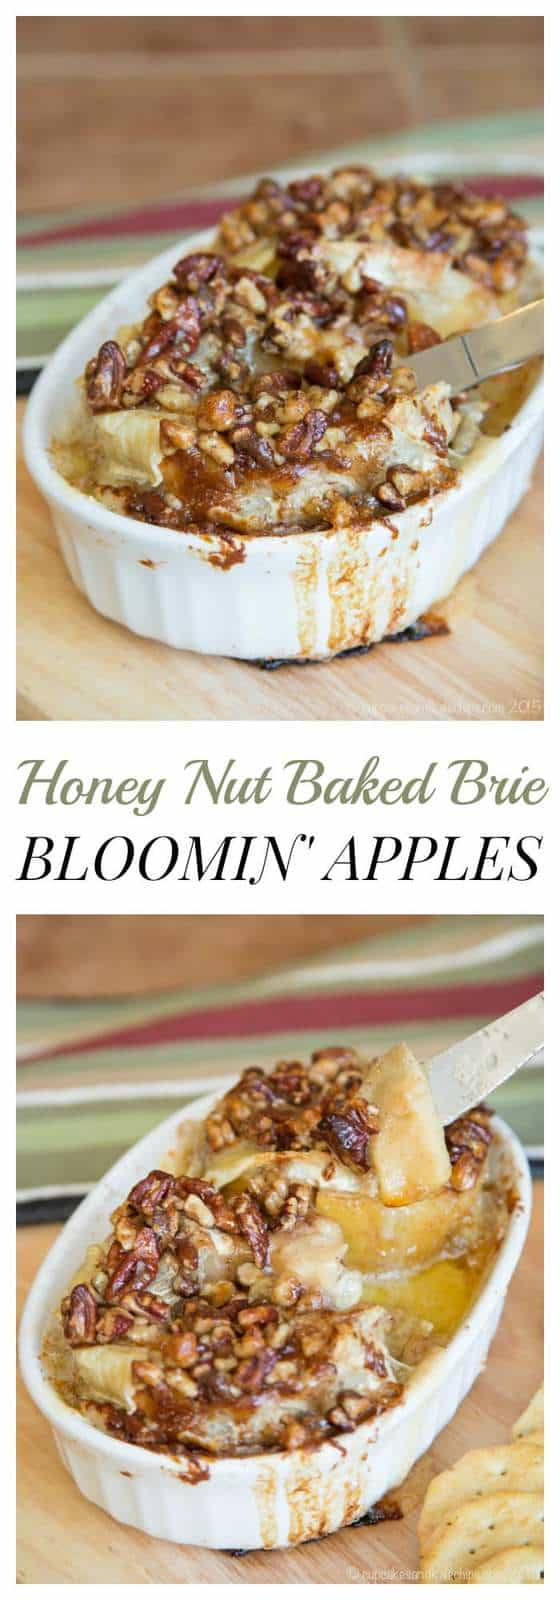 "Honey Nut Baked Brie Bloomin' Apples - melty Brie cheese oozing between ""petals"" of fruit make this semi-copycat recipe and irresistible appetizer! 